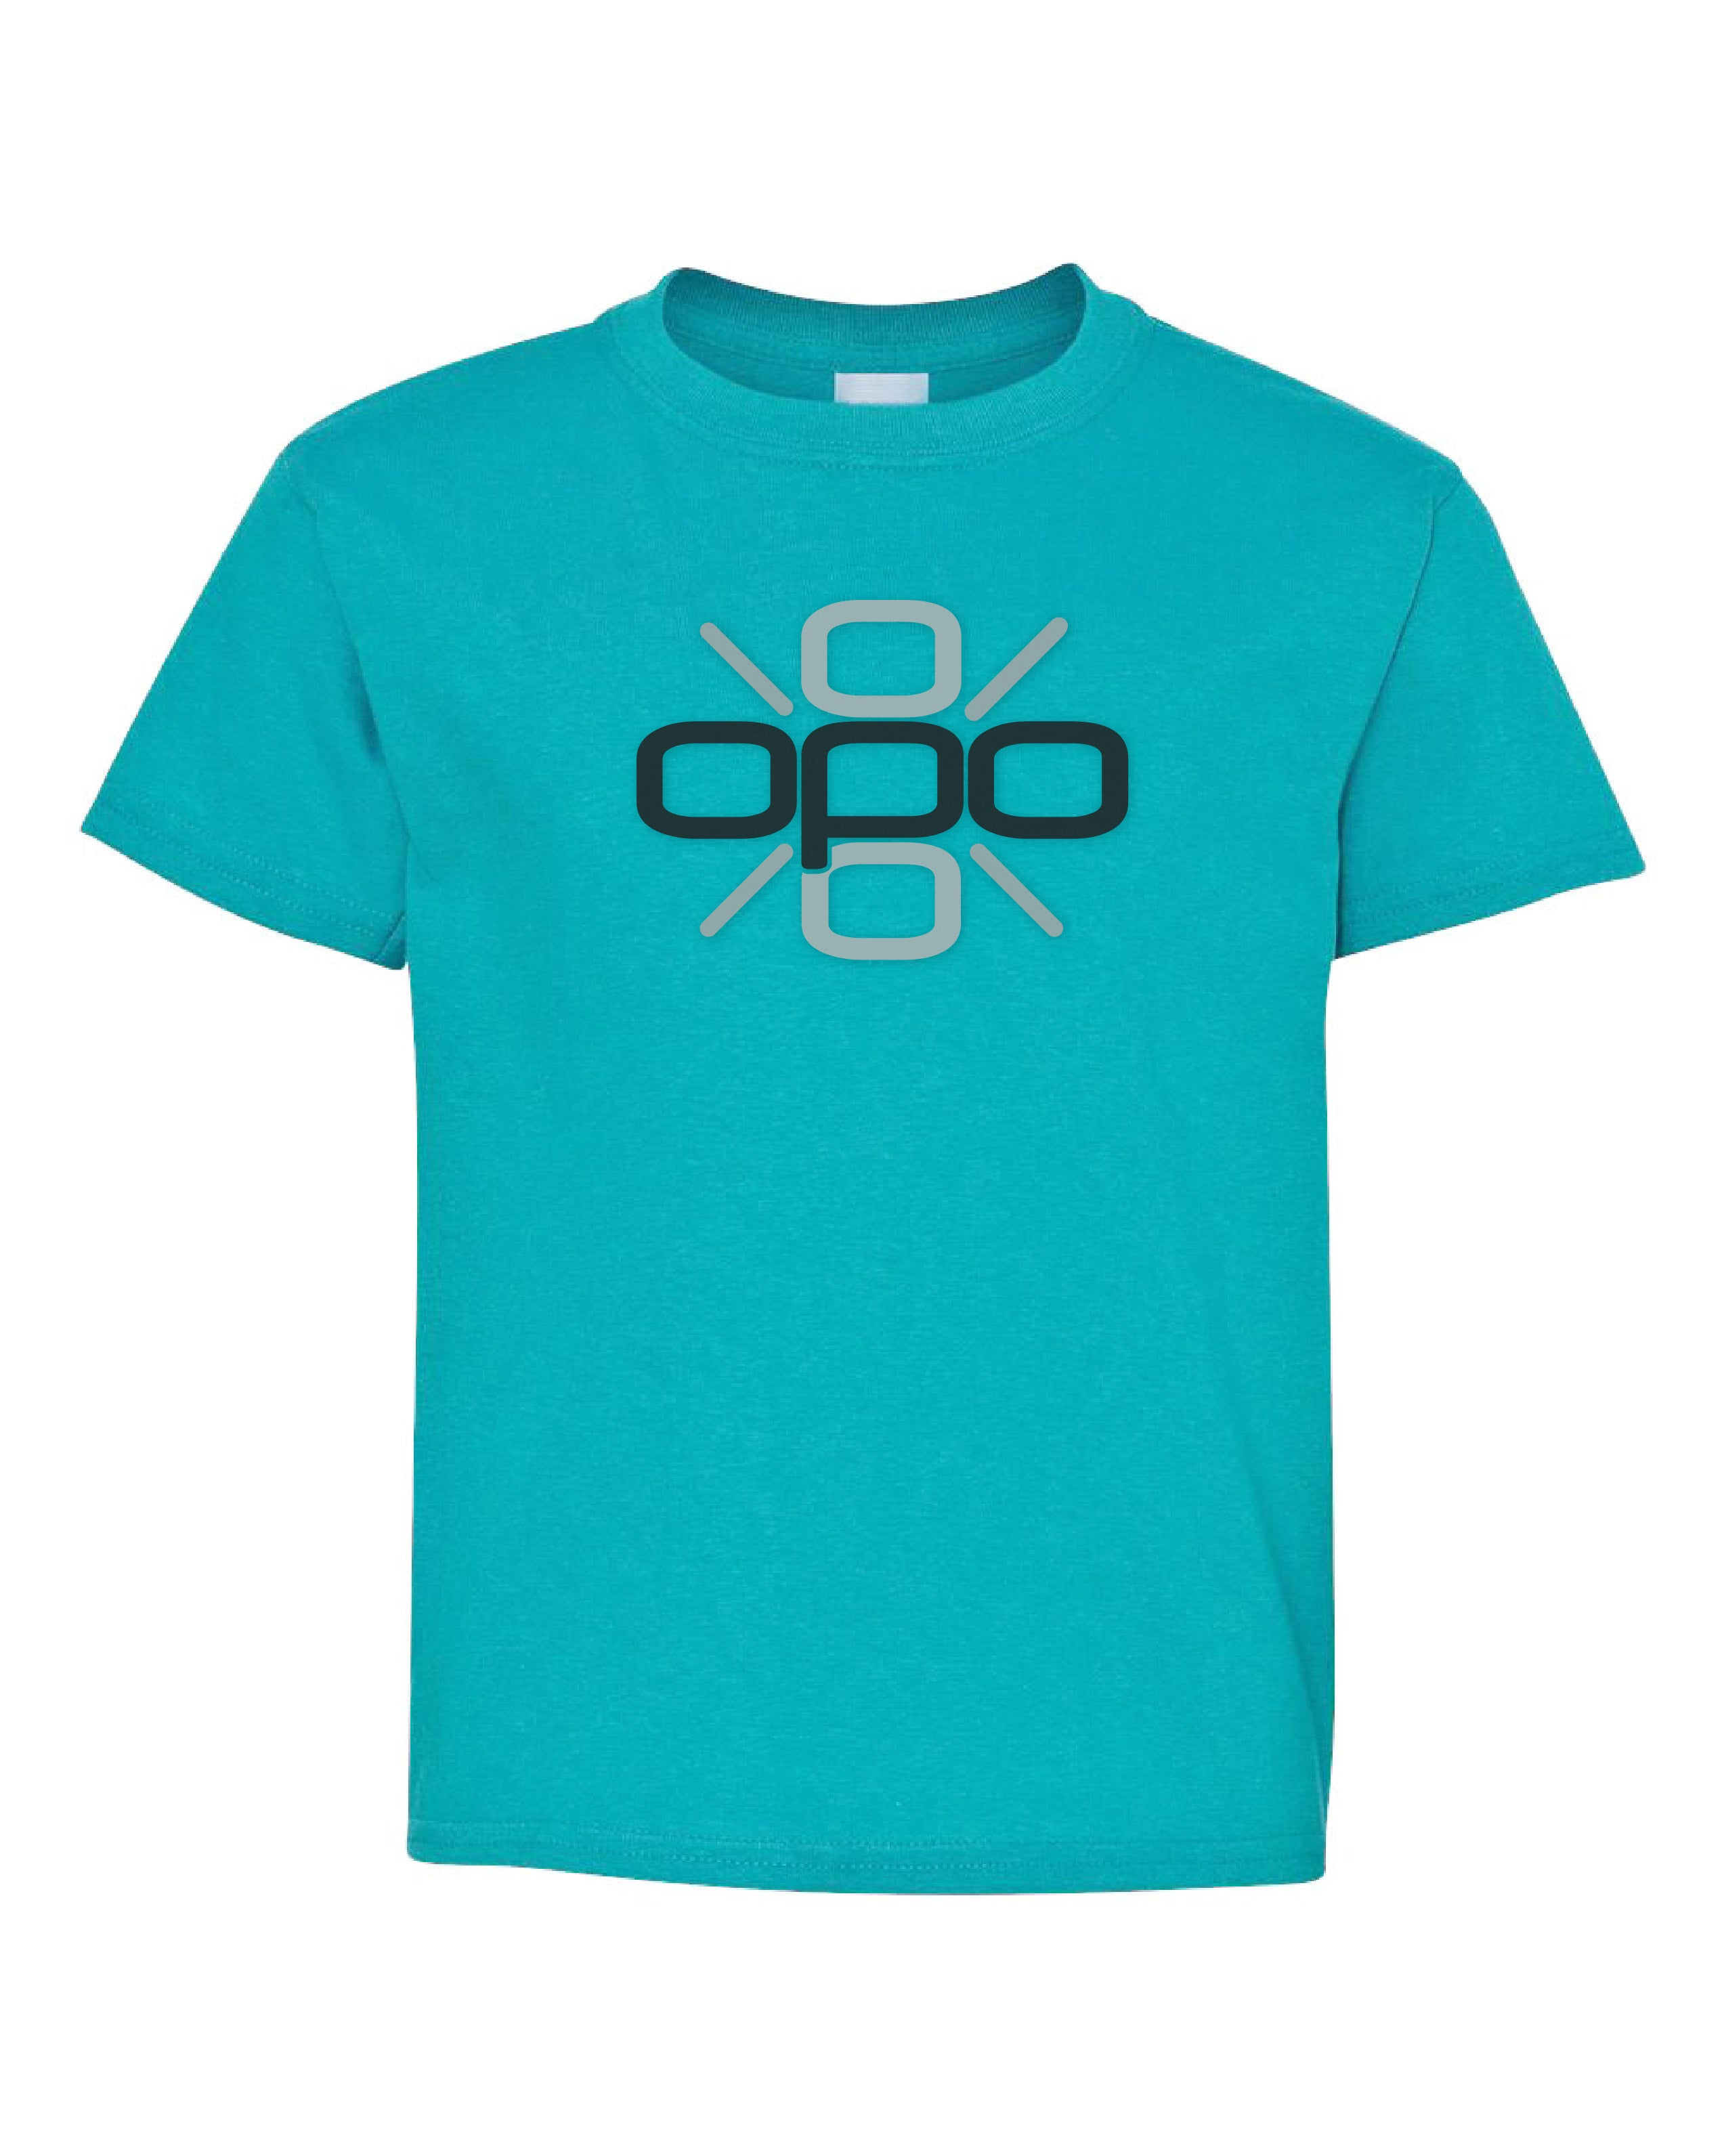 """Opo"" Shirt - Youth - Style Y10"